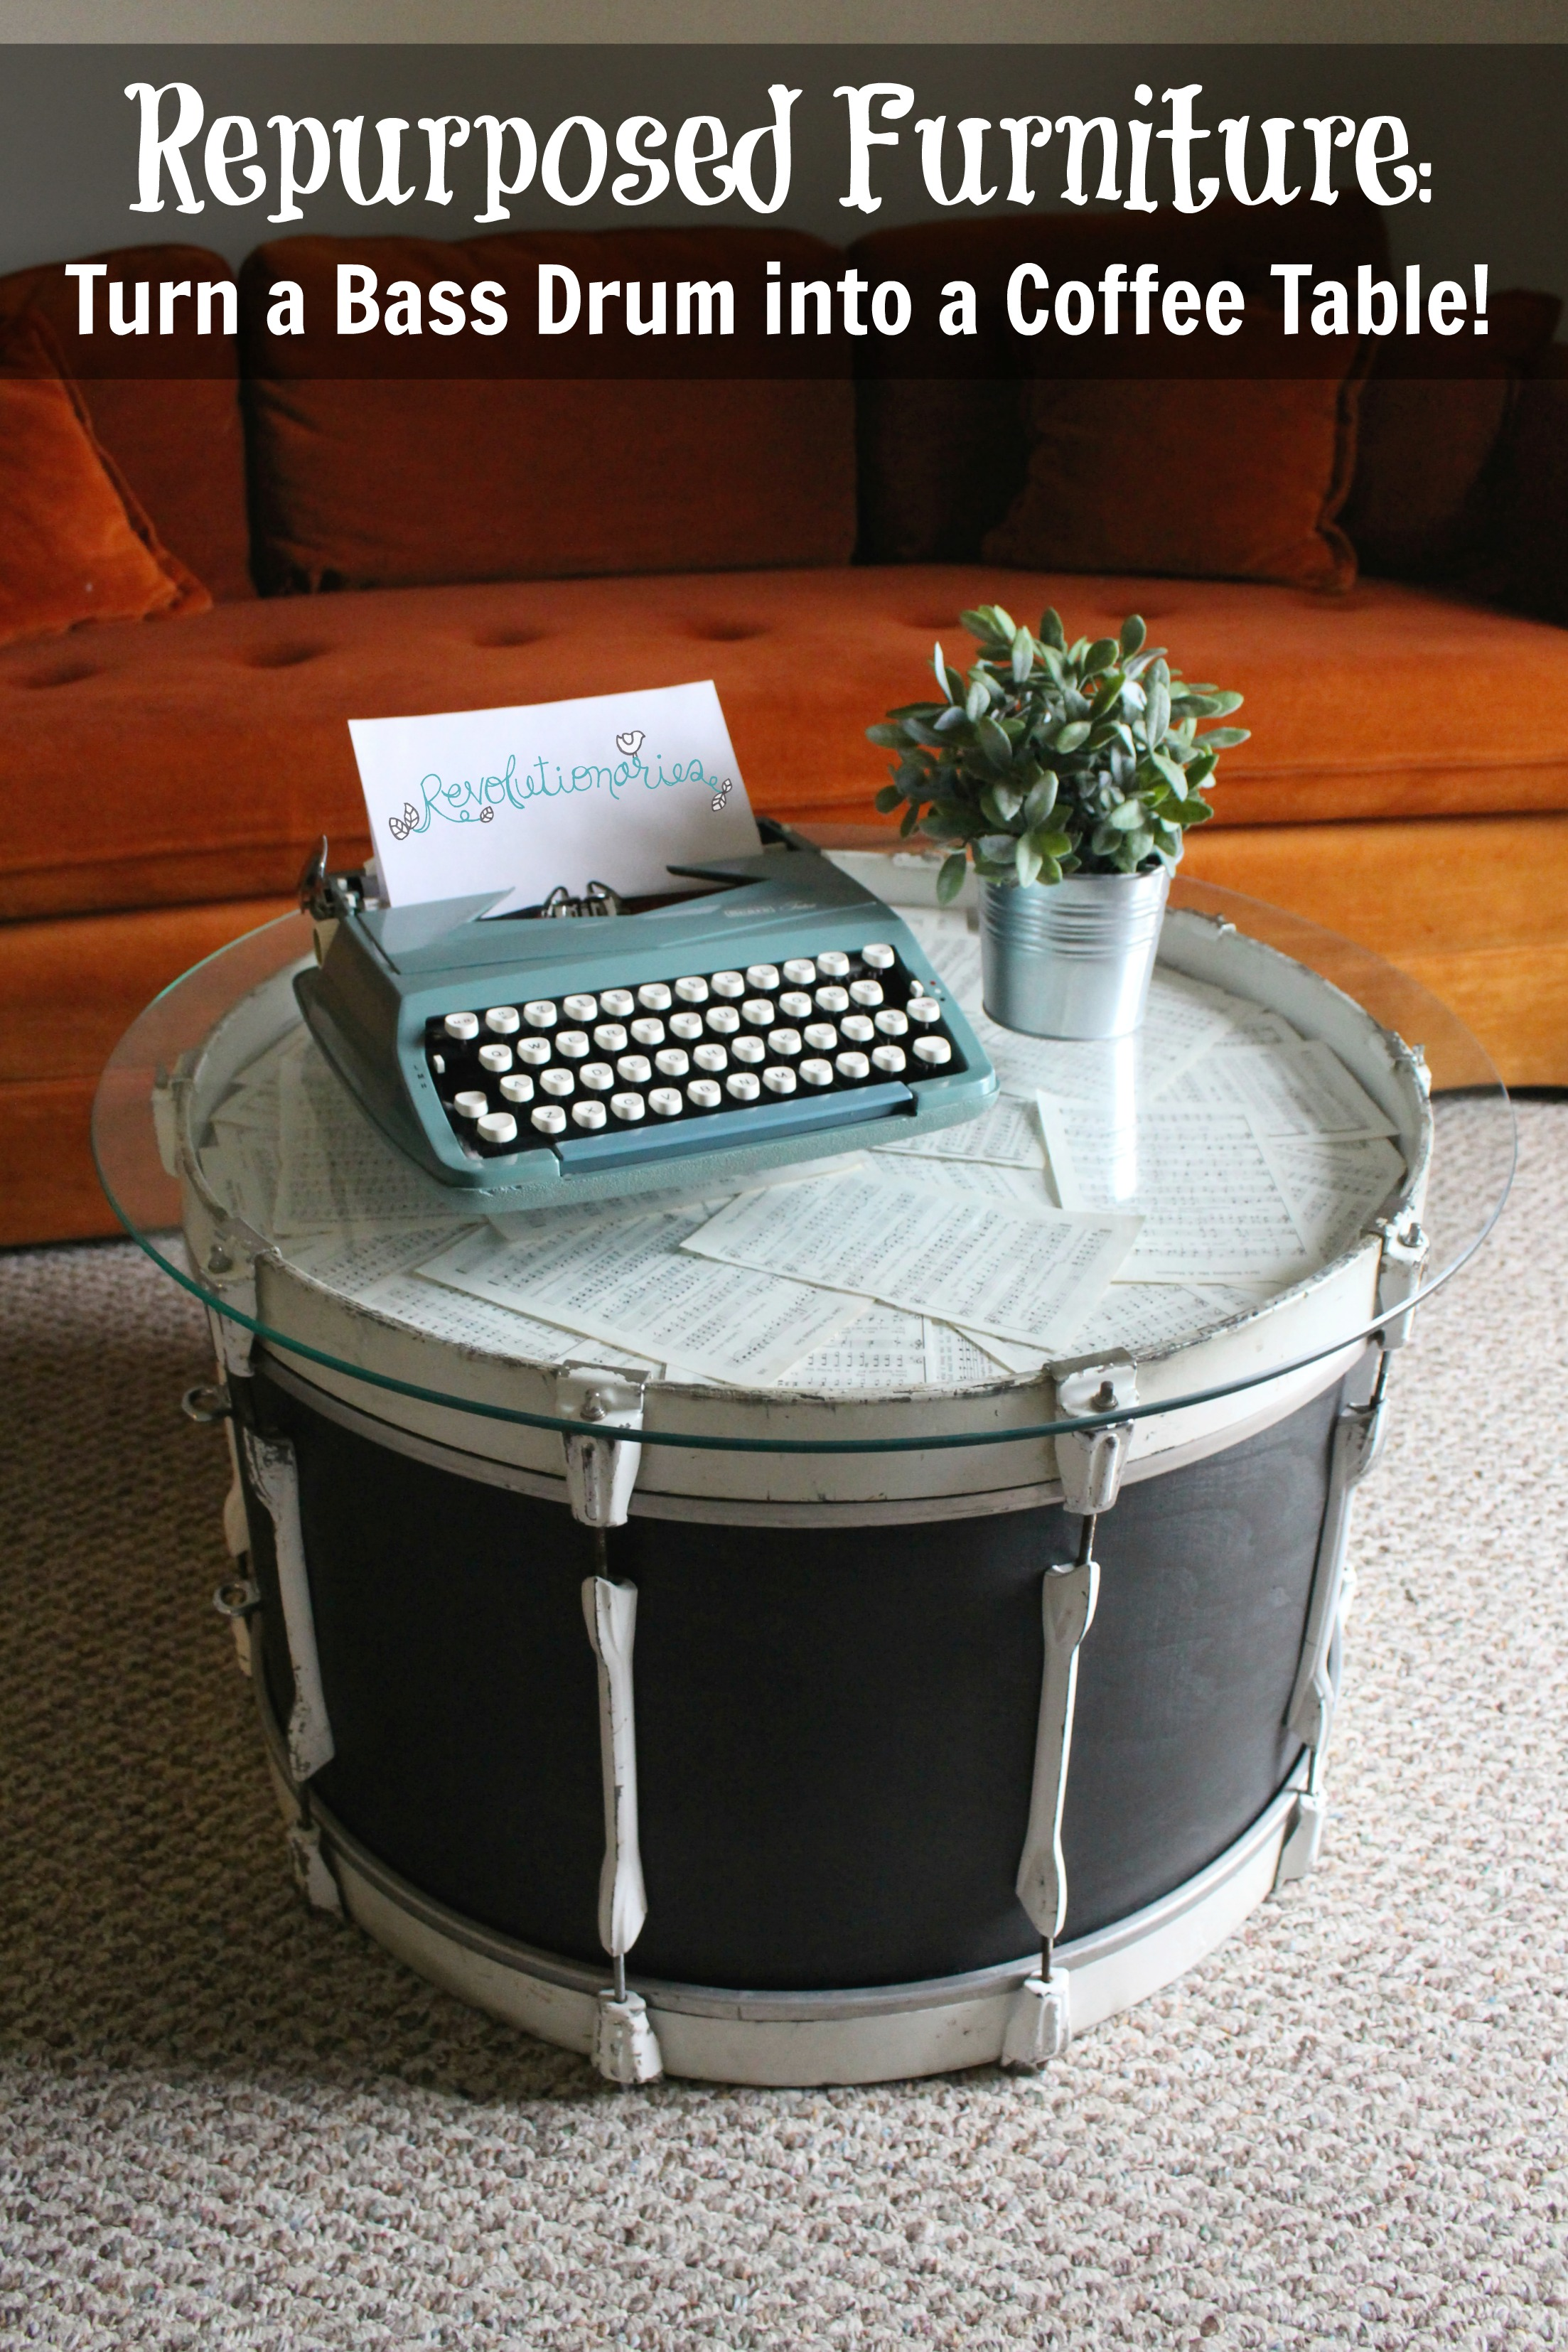 repurposed-furniture-bass-drum-into-coffee-table-1.jpg